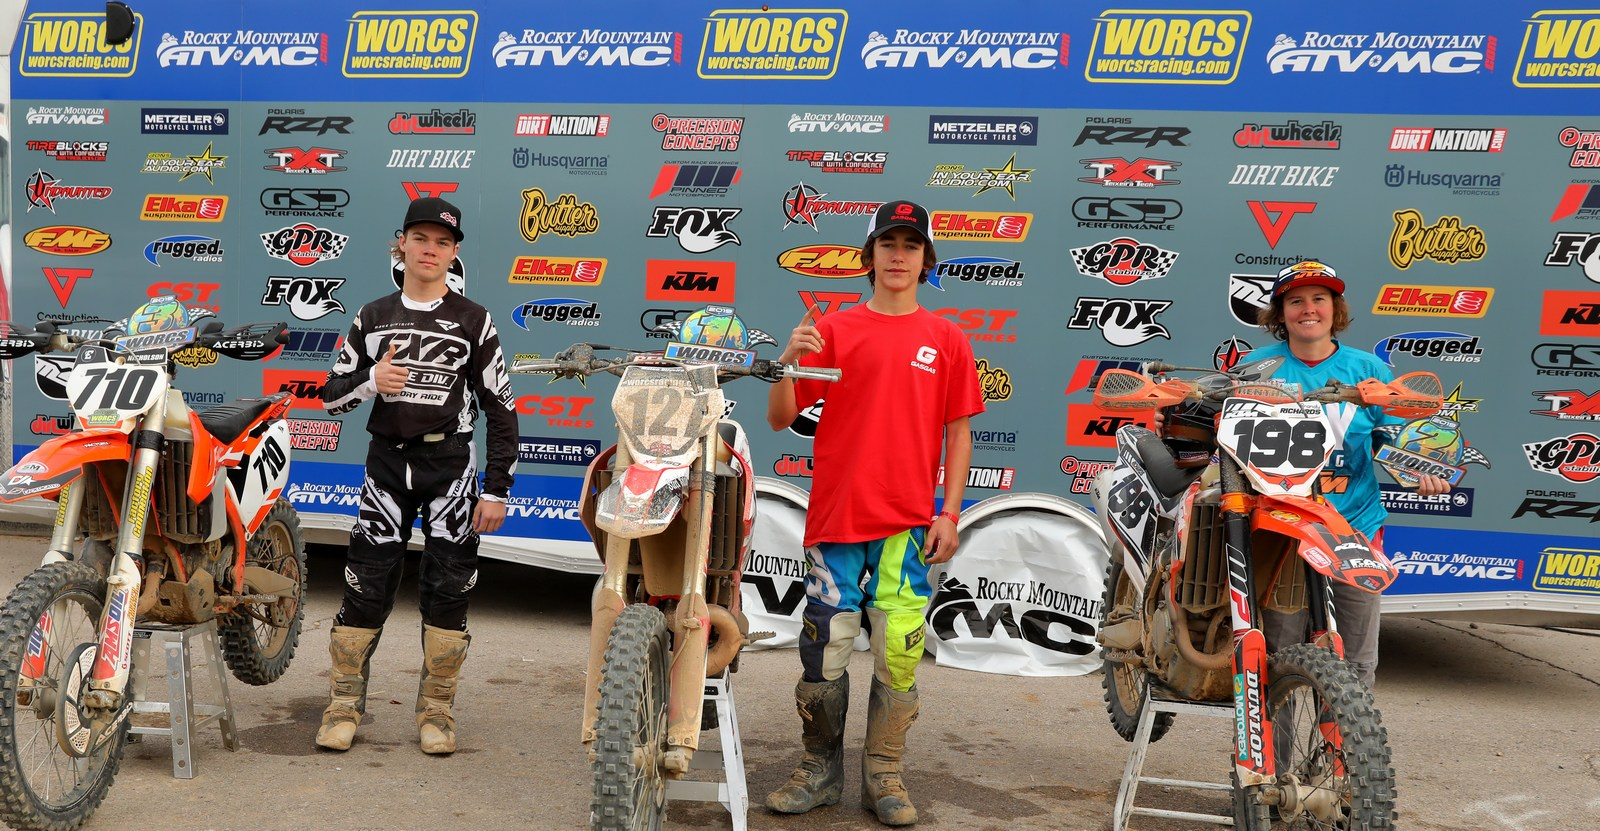 2019-01-podium-motorcycle-pro2-lights-worcs-racing